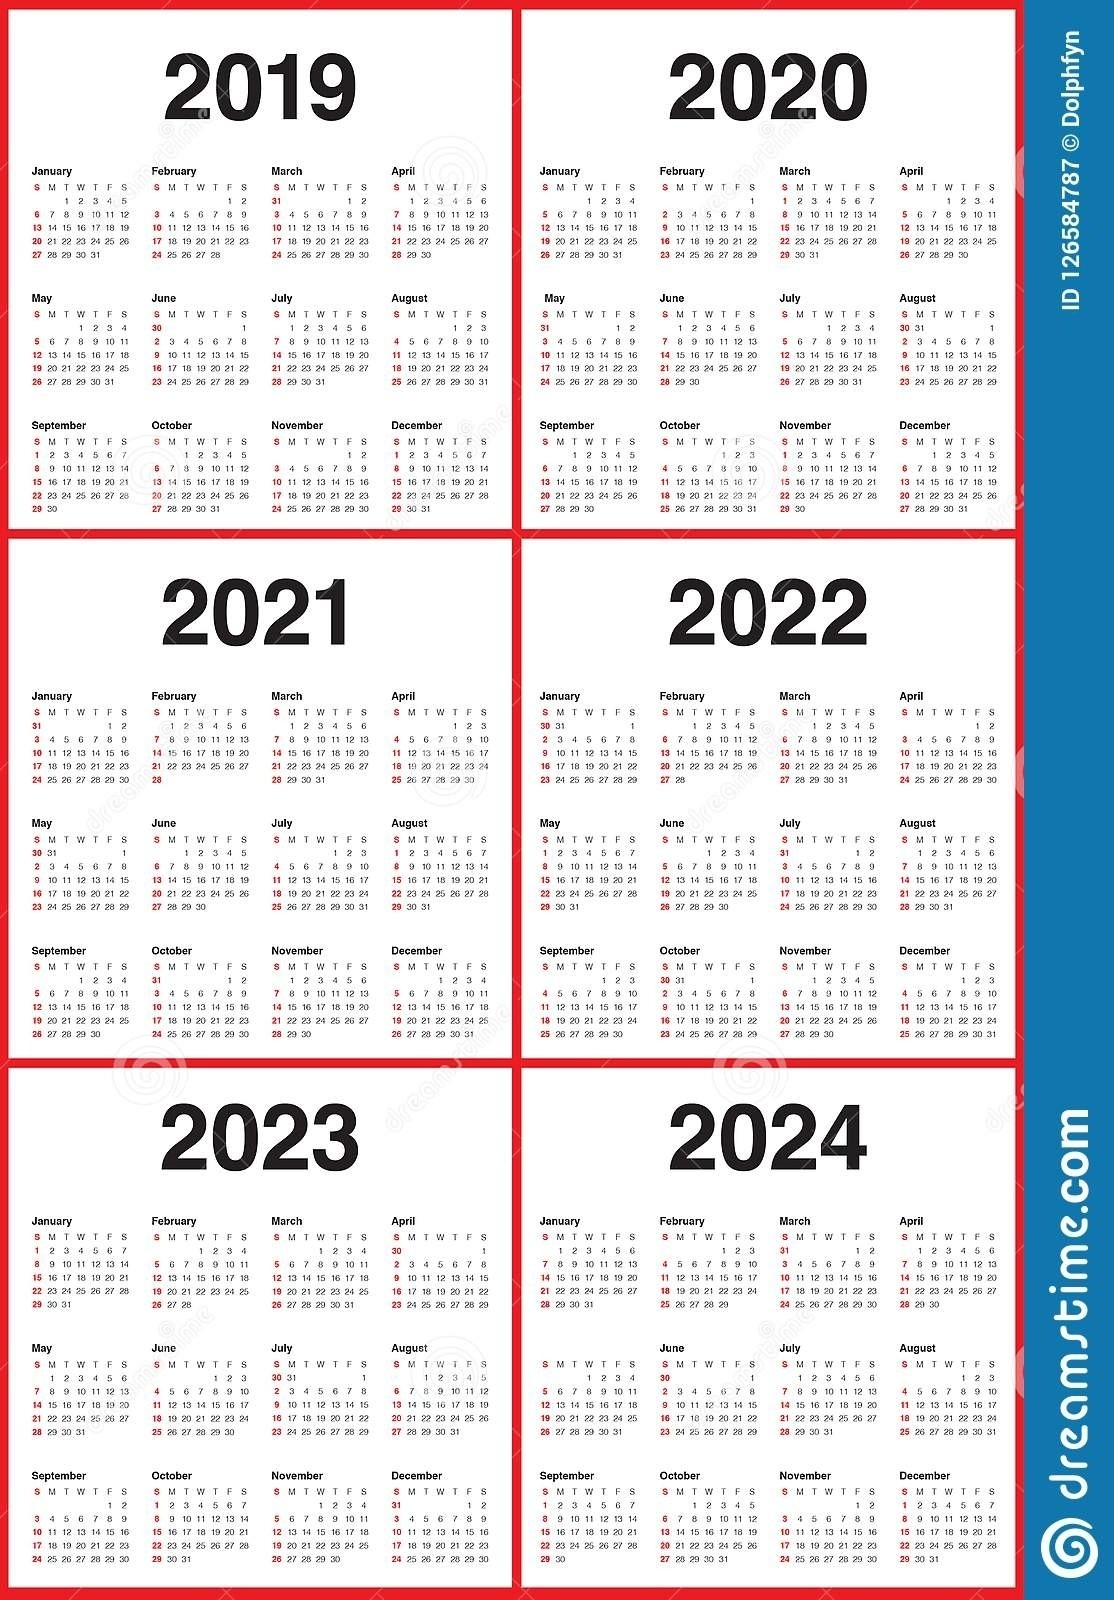 Dashing 3 Year Calendar 2020 To 2022 • Printable Blank Calendar Template-3 Year Calendar 2021 To 2023